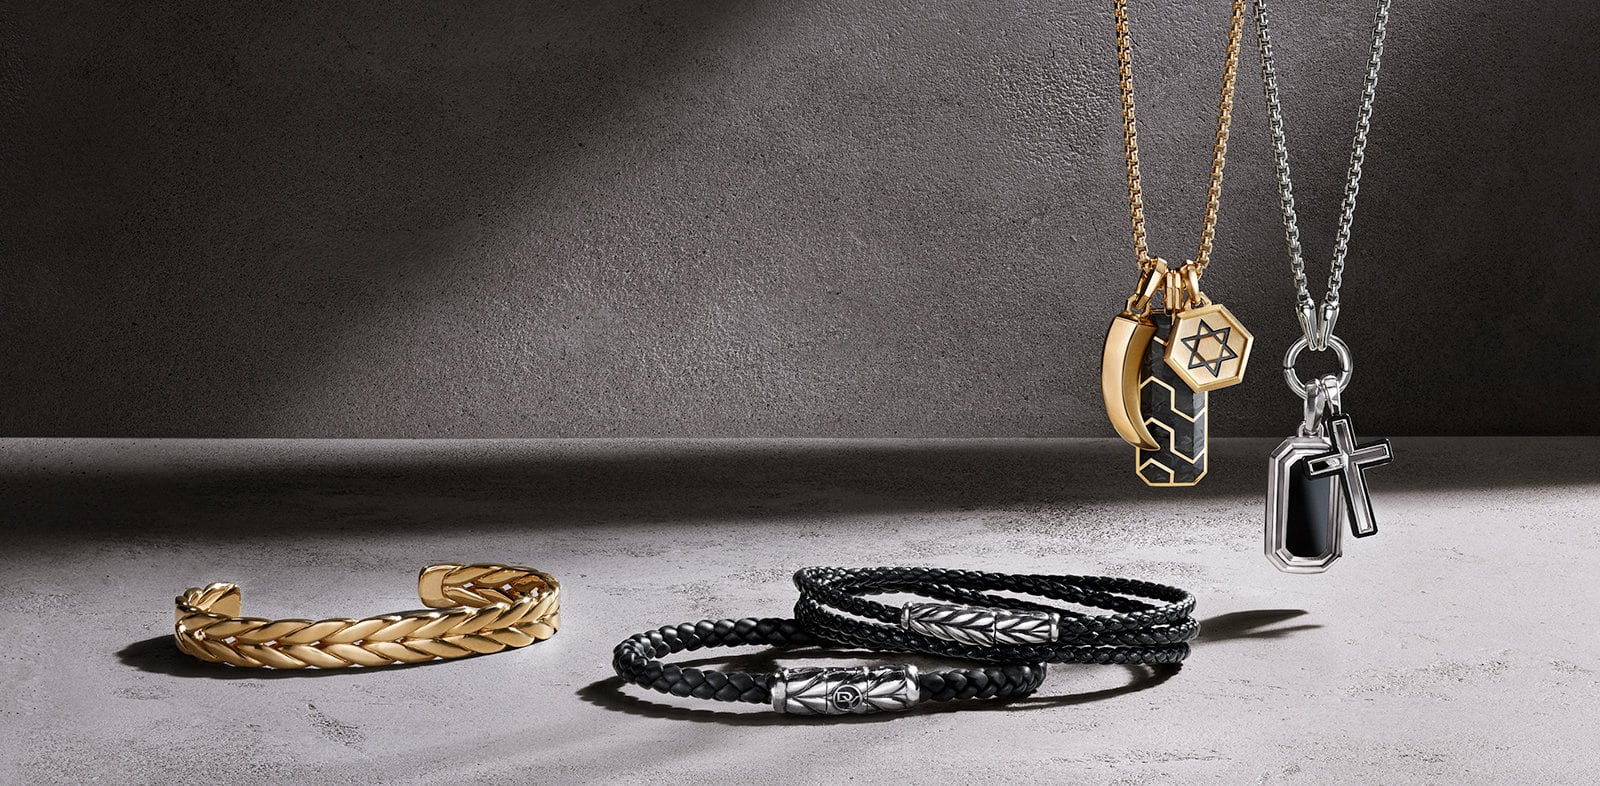 David Yurman Chevron bracelets, in 18K yellow gold or woven black rubber or leather with sterling silver, lying on a light grey stone surface next to hanging groups of David Yurman Roman, Forged Carbon and Deco amulets in 18K yellow gold or sterling silver with or without forged carbon or black onyx.